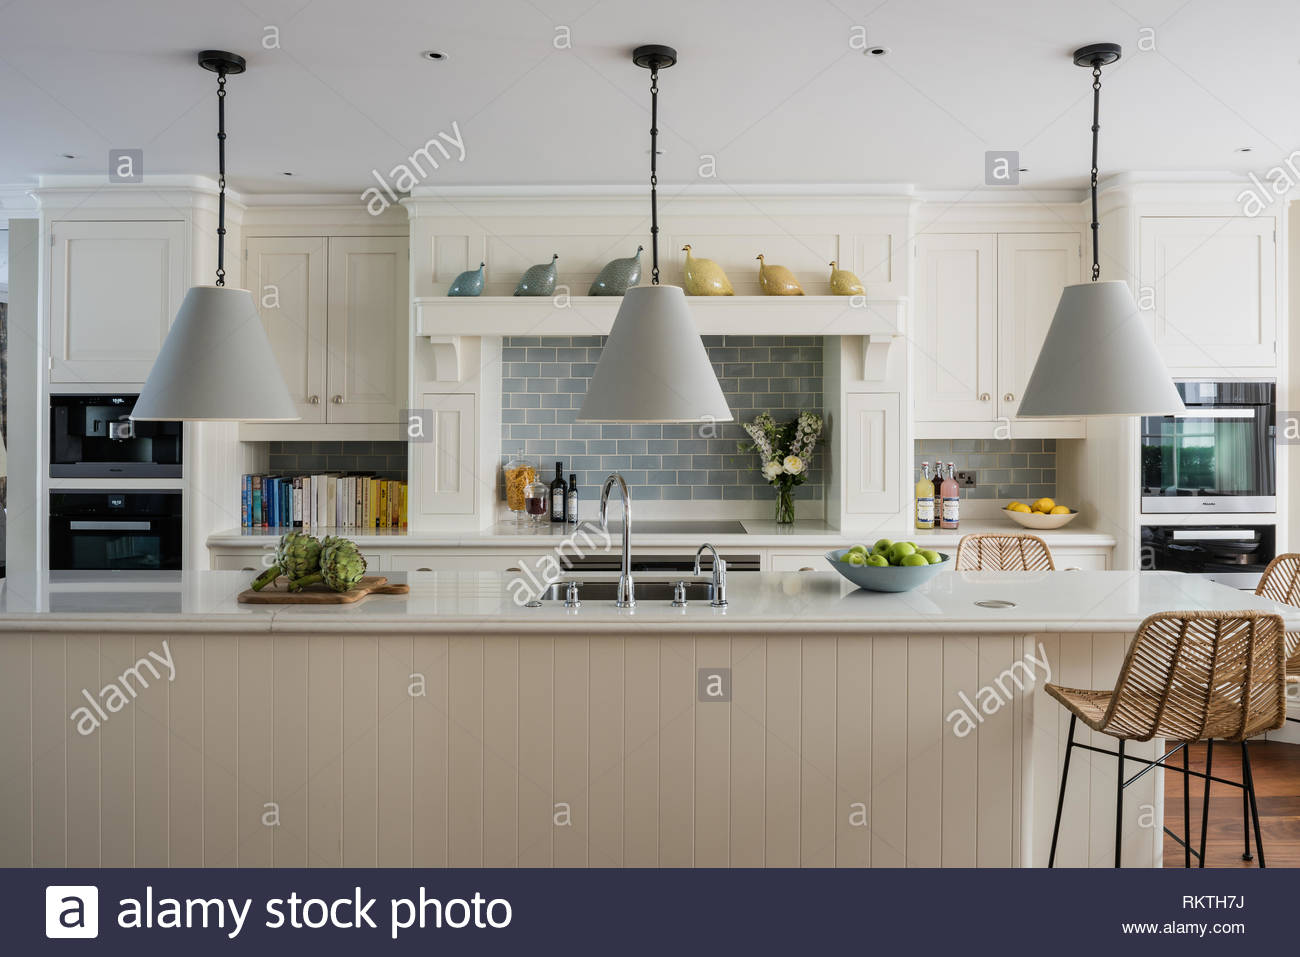 Lighting Design Kth Kitchen Tiles By Waterworks And Lighting By Circa Stock